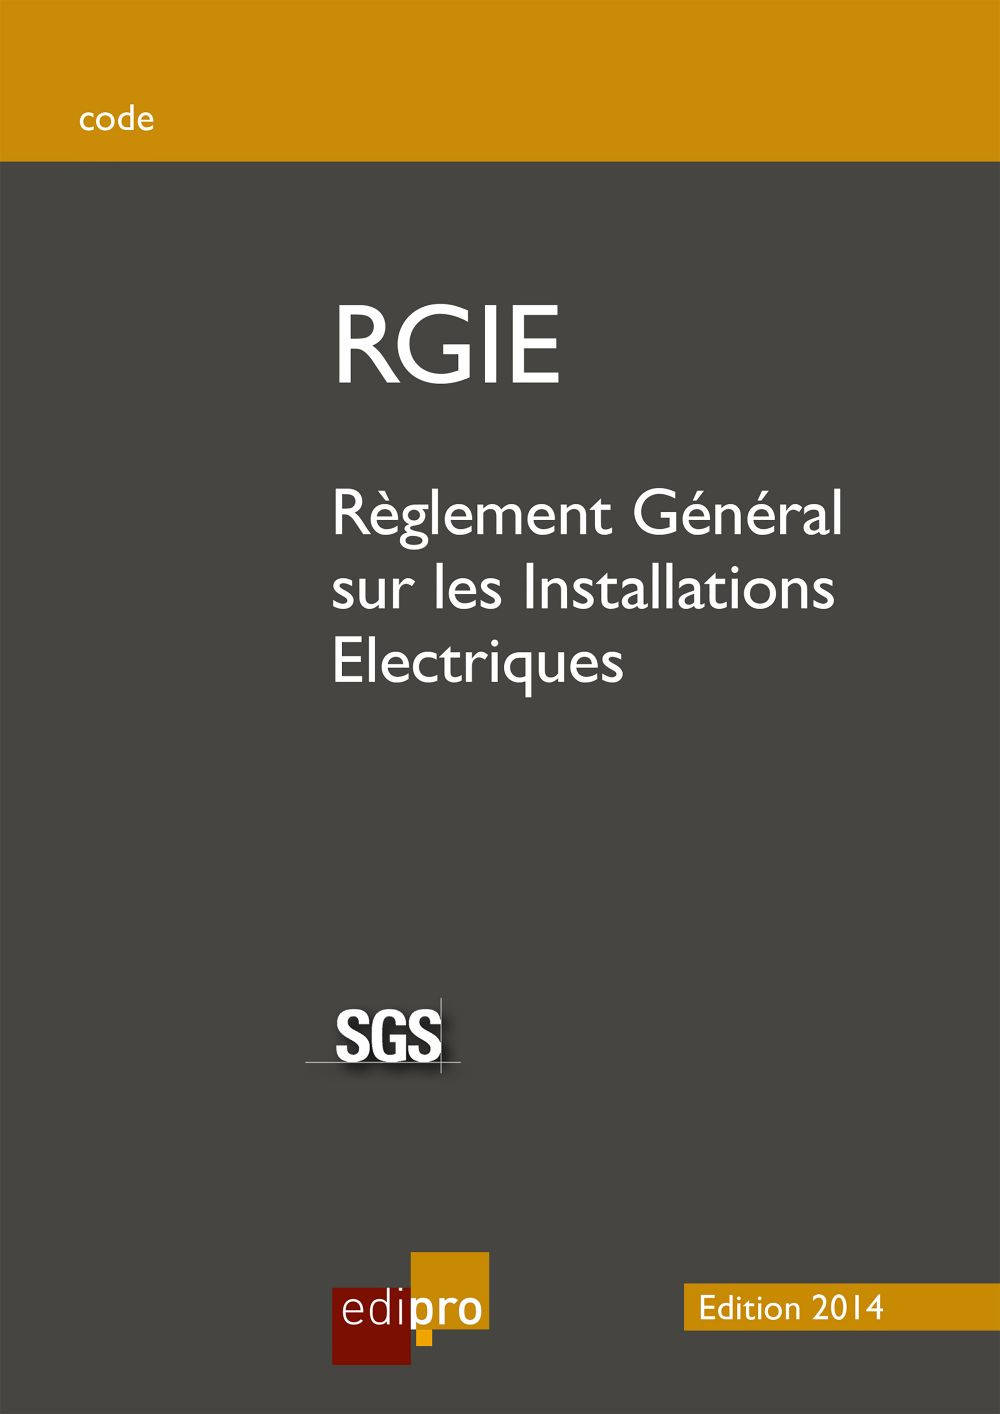 RGIE